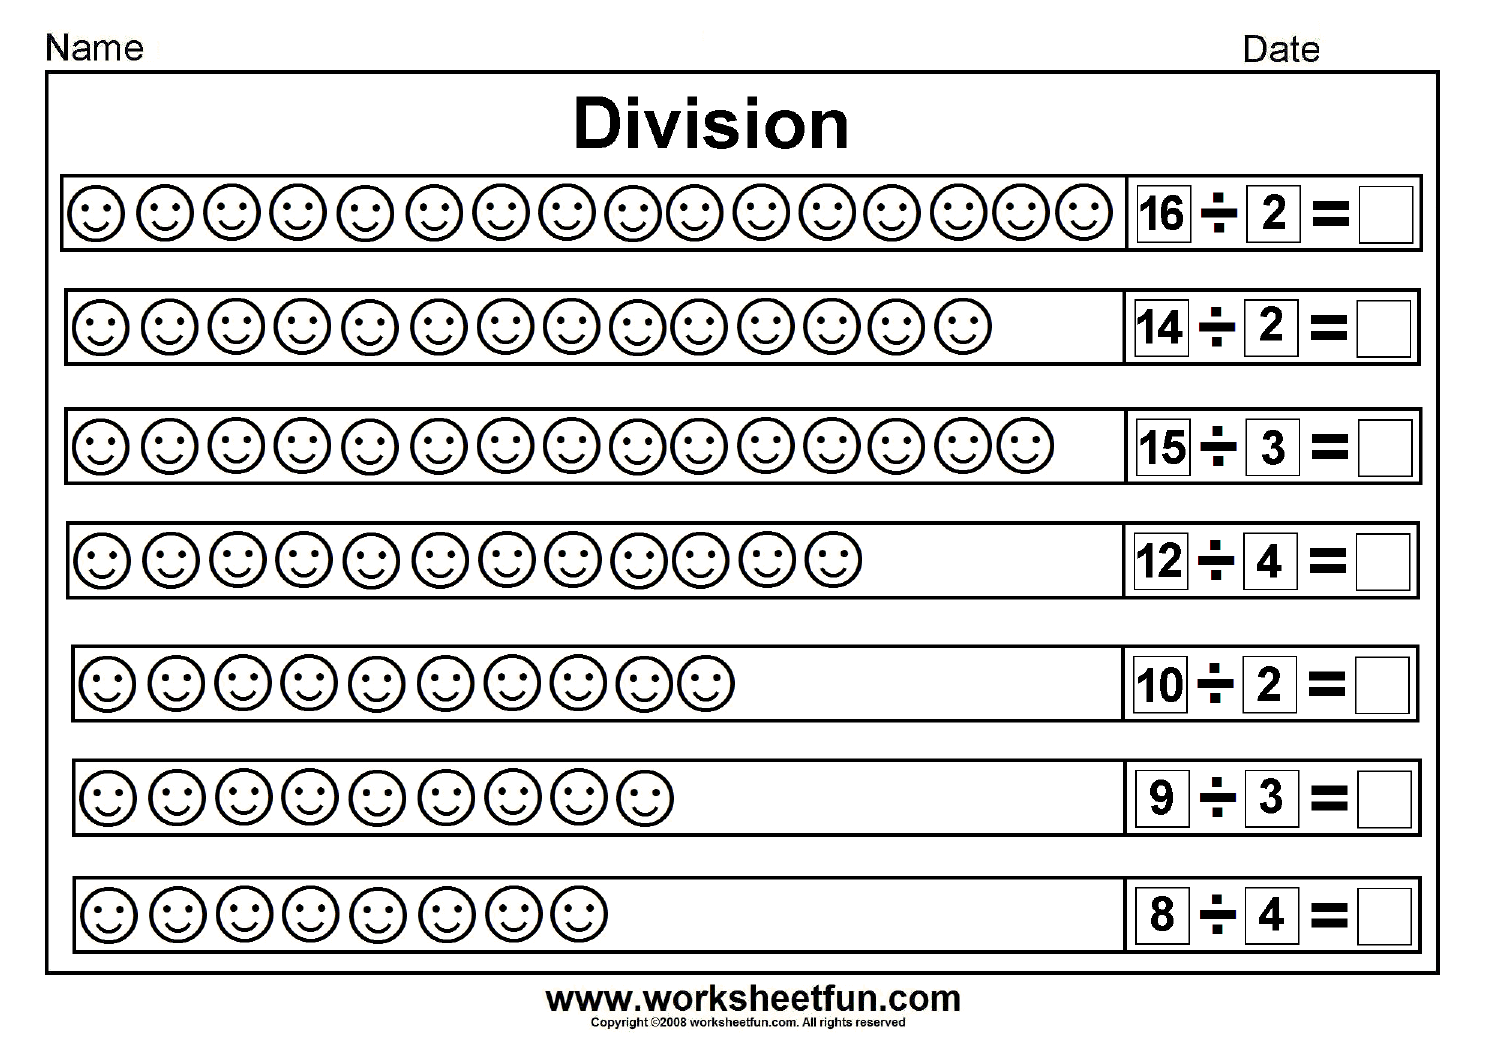 Division Worksheets For 3rd Grade Worksheet – Division Worksheets for Grade 1